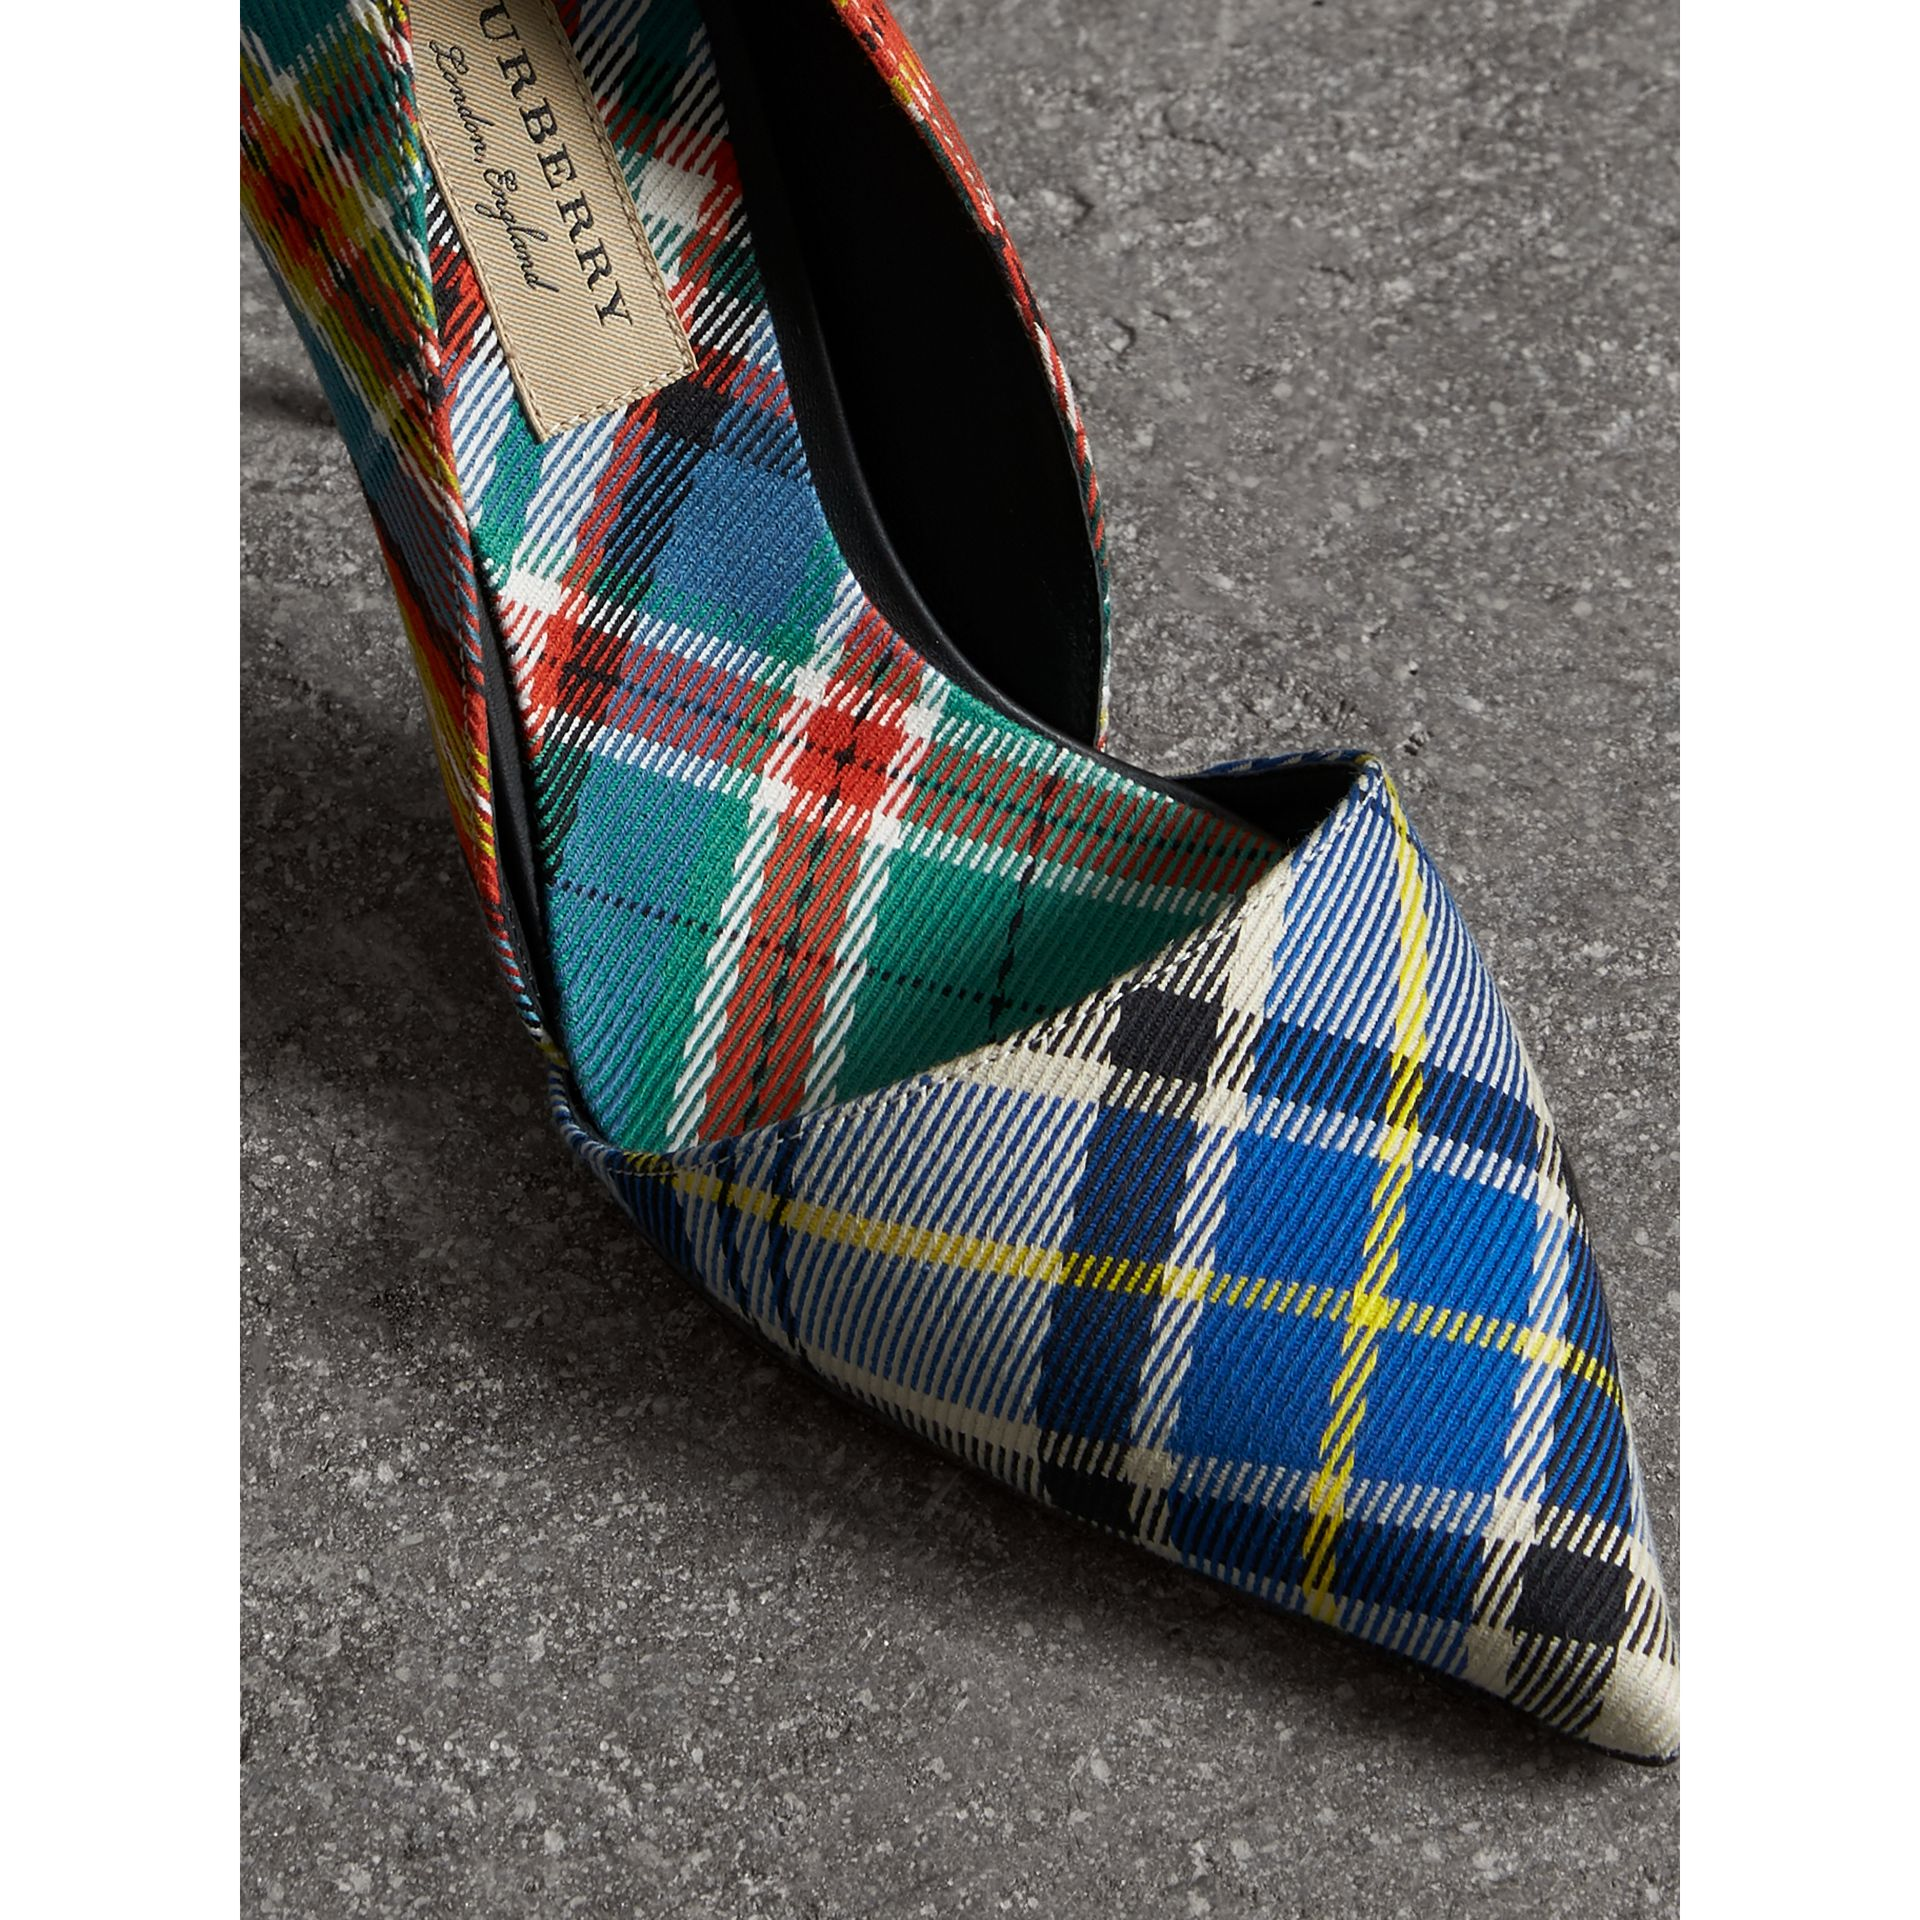 Escarpins en coton tartan (Orange Coquelicot) - Femme | Burberry Canada - photo de la galerie 1